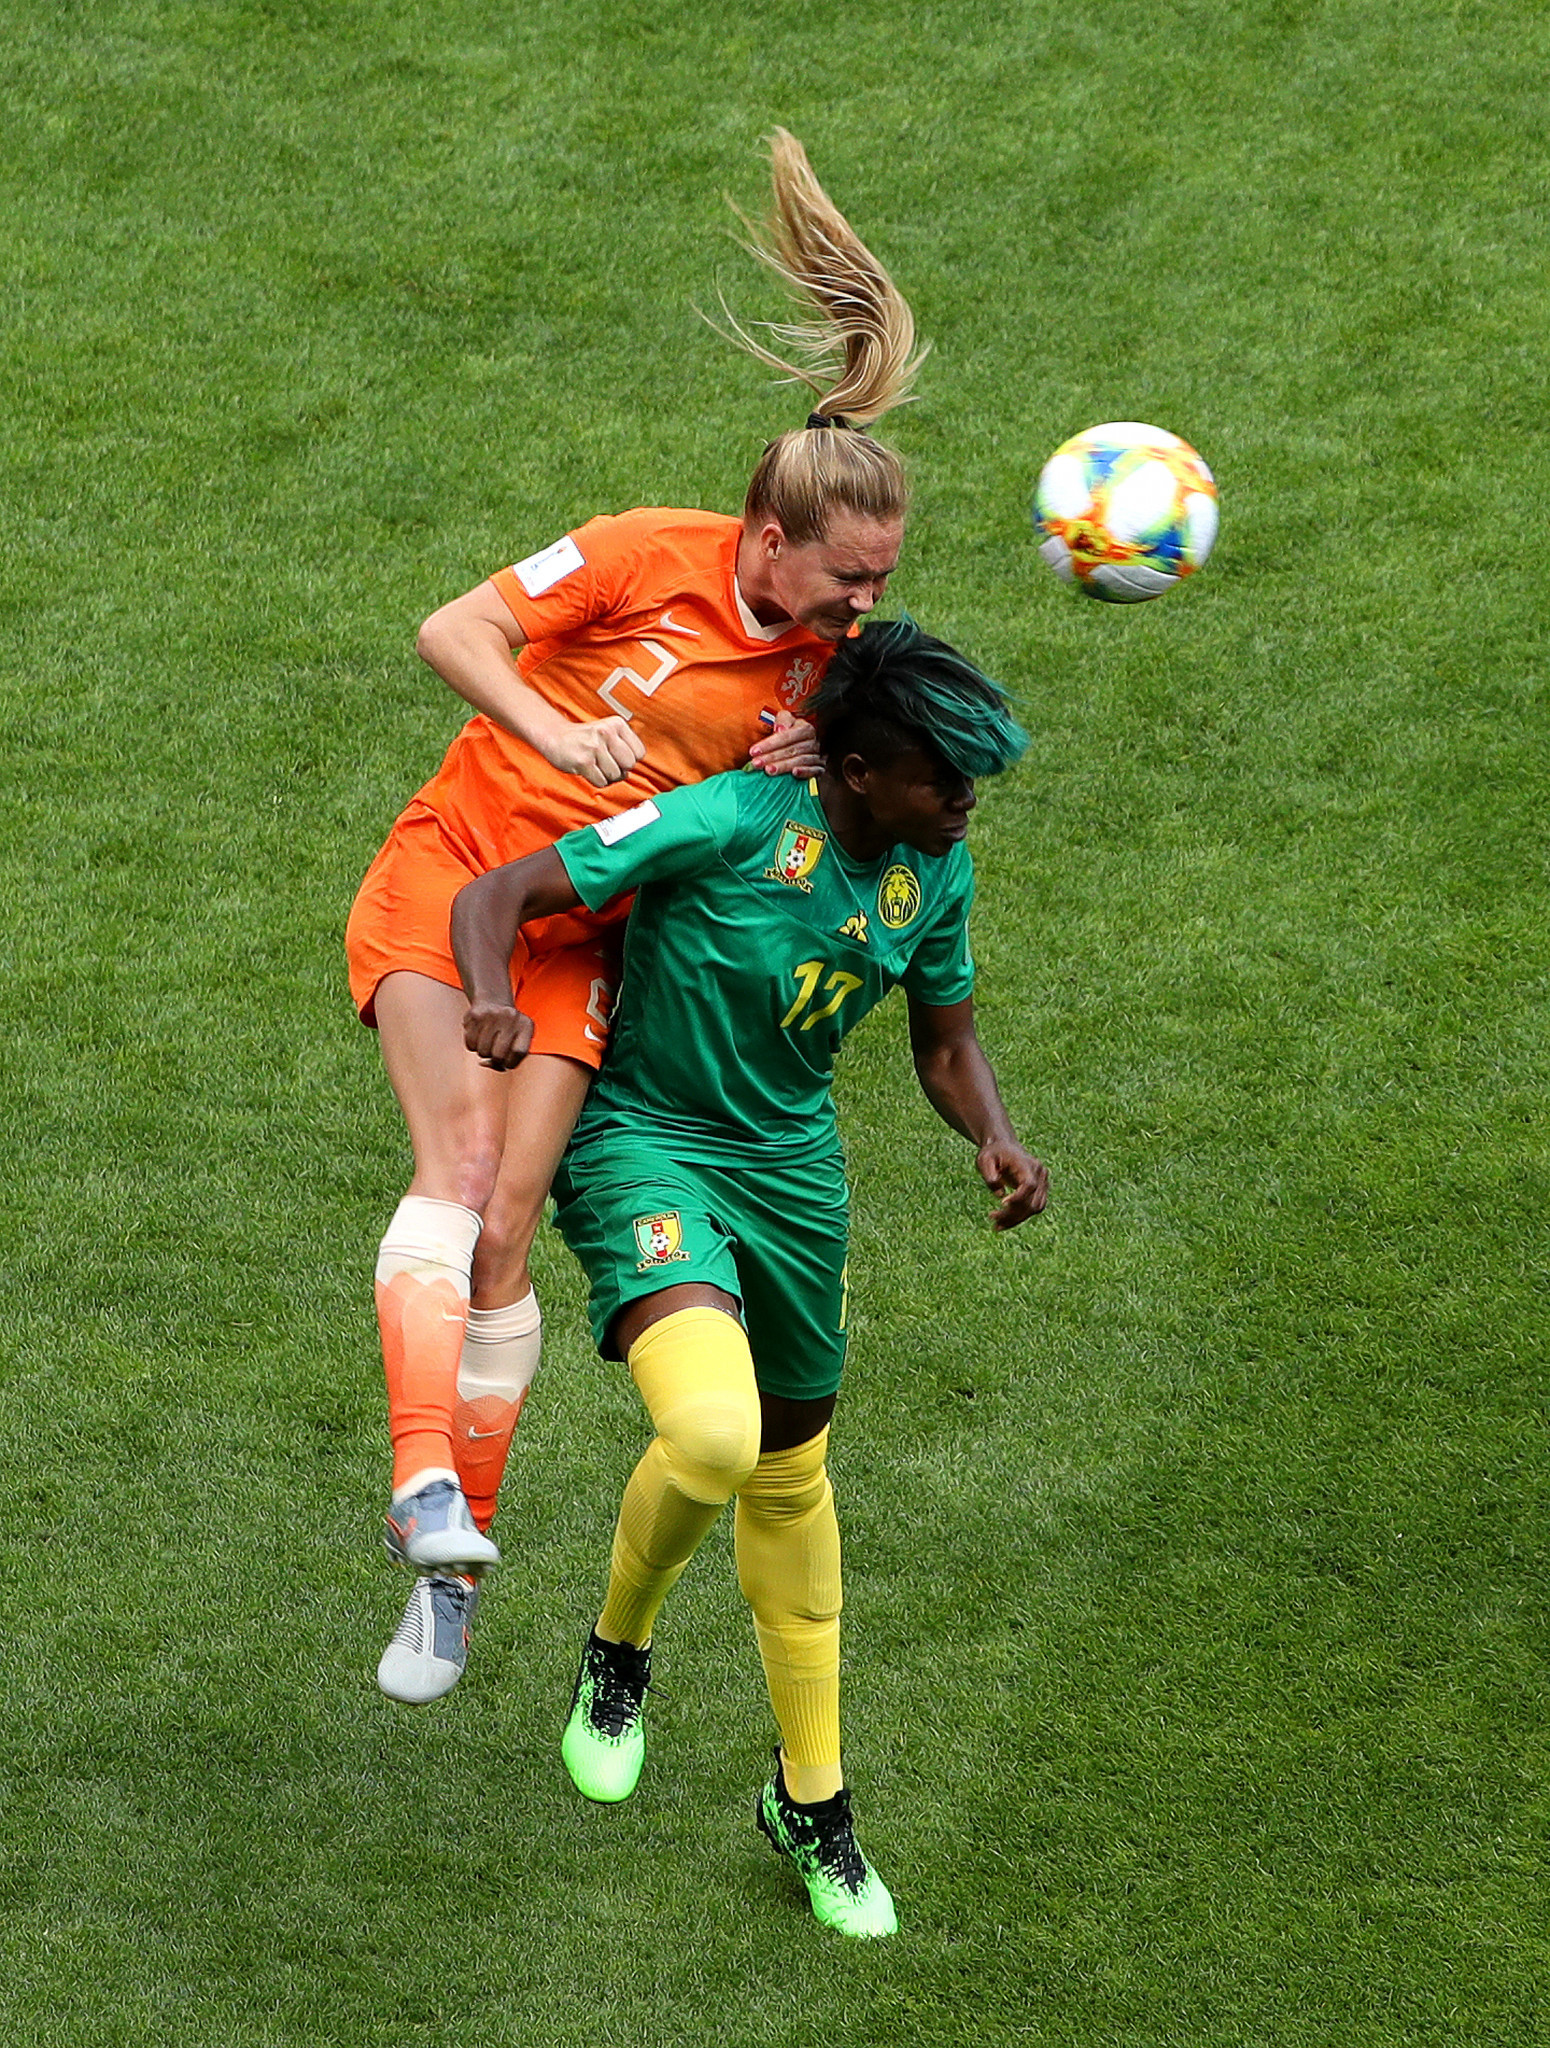 Desiree van Lunteren of the Netherlands competes for a header with Cameroon's Gaelle Enganamouit ©Getty Images